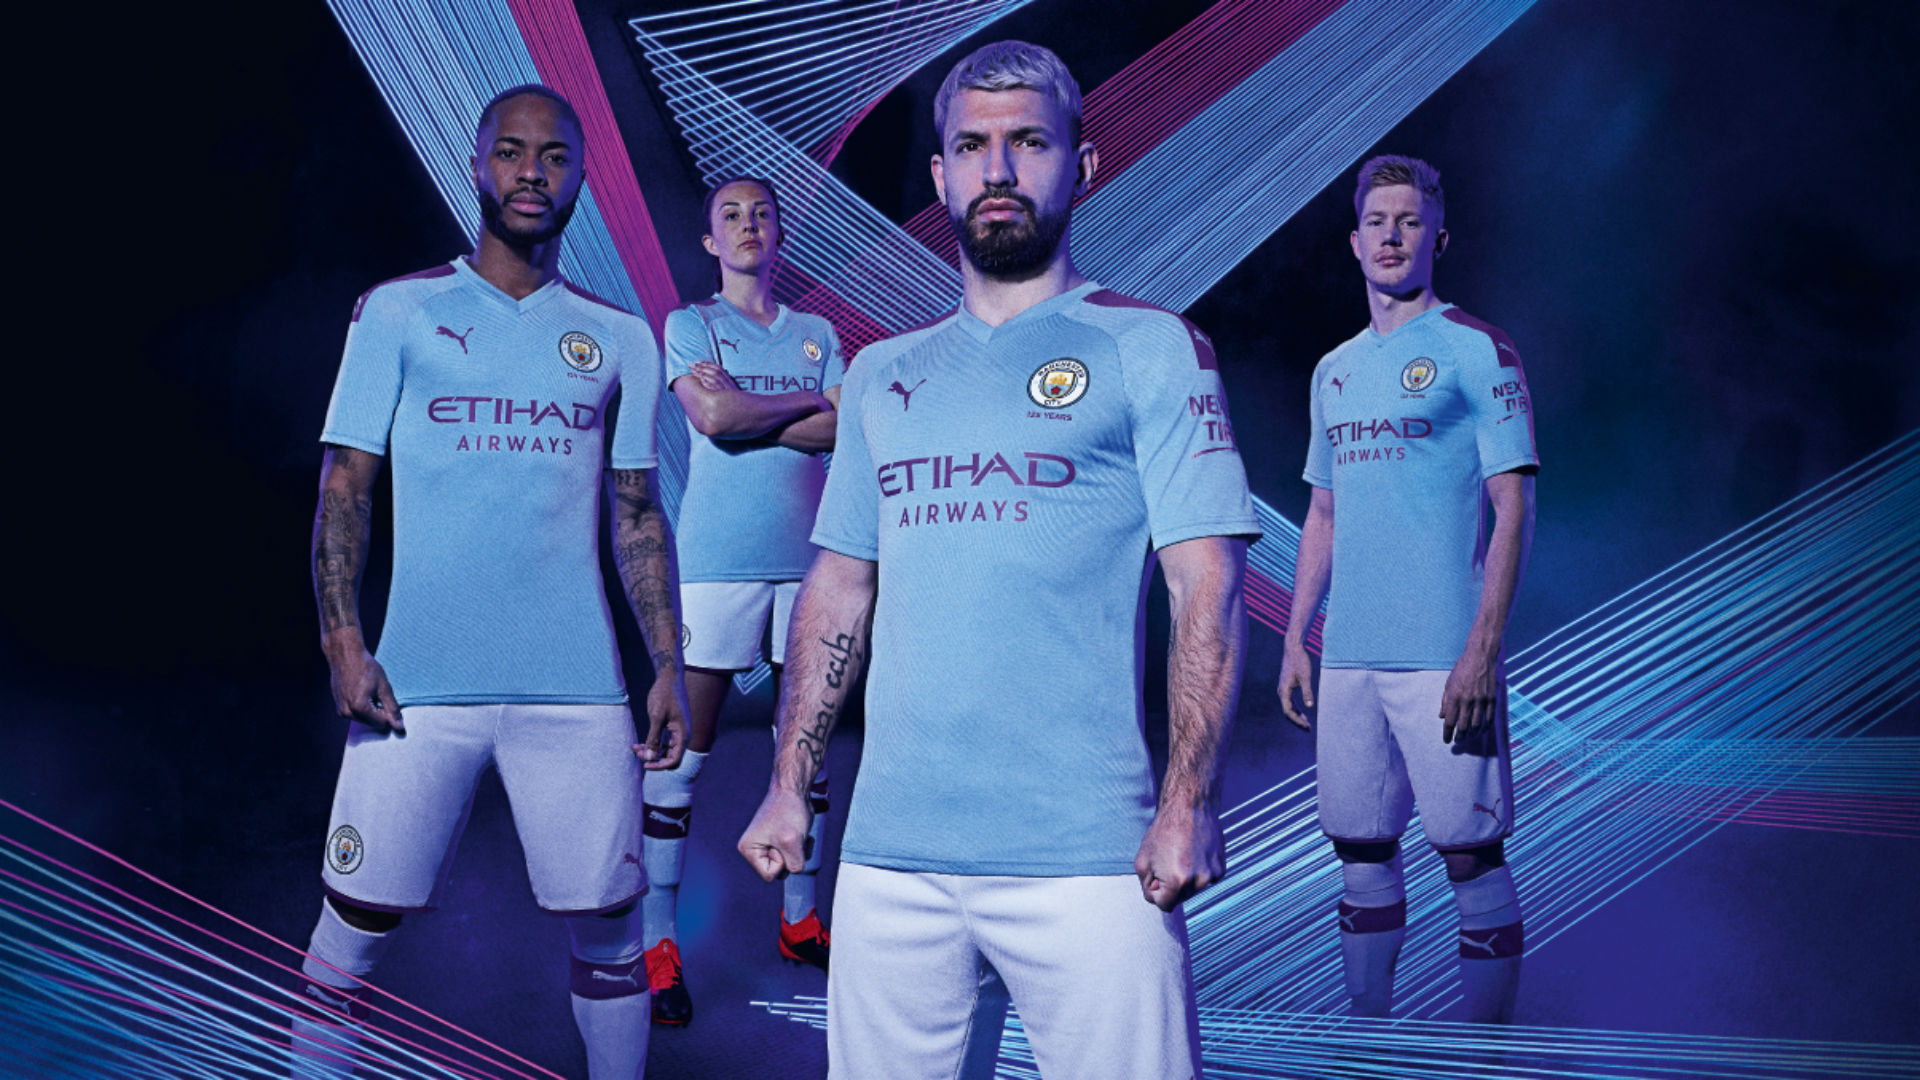 Man City Kits 2019 20 Treble Winners Reveal 125 Year